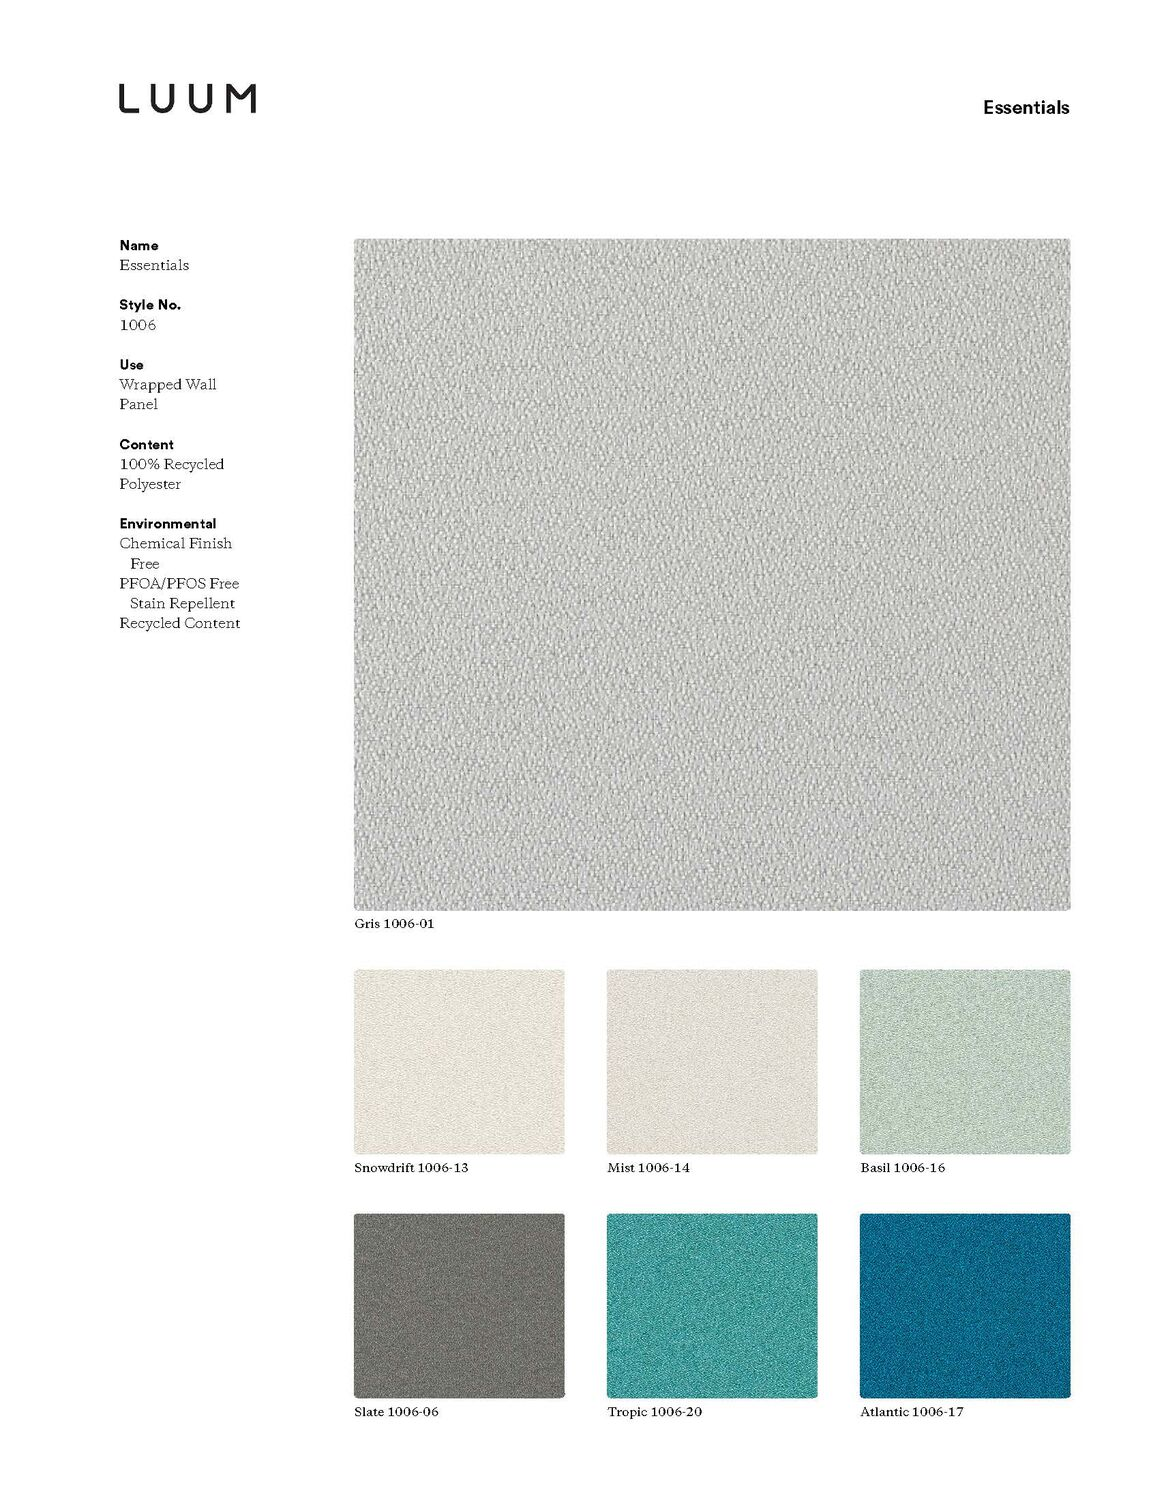 Essentials - Gris - 1006 - 01 Sample Card